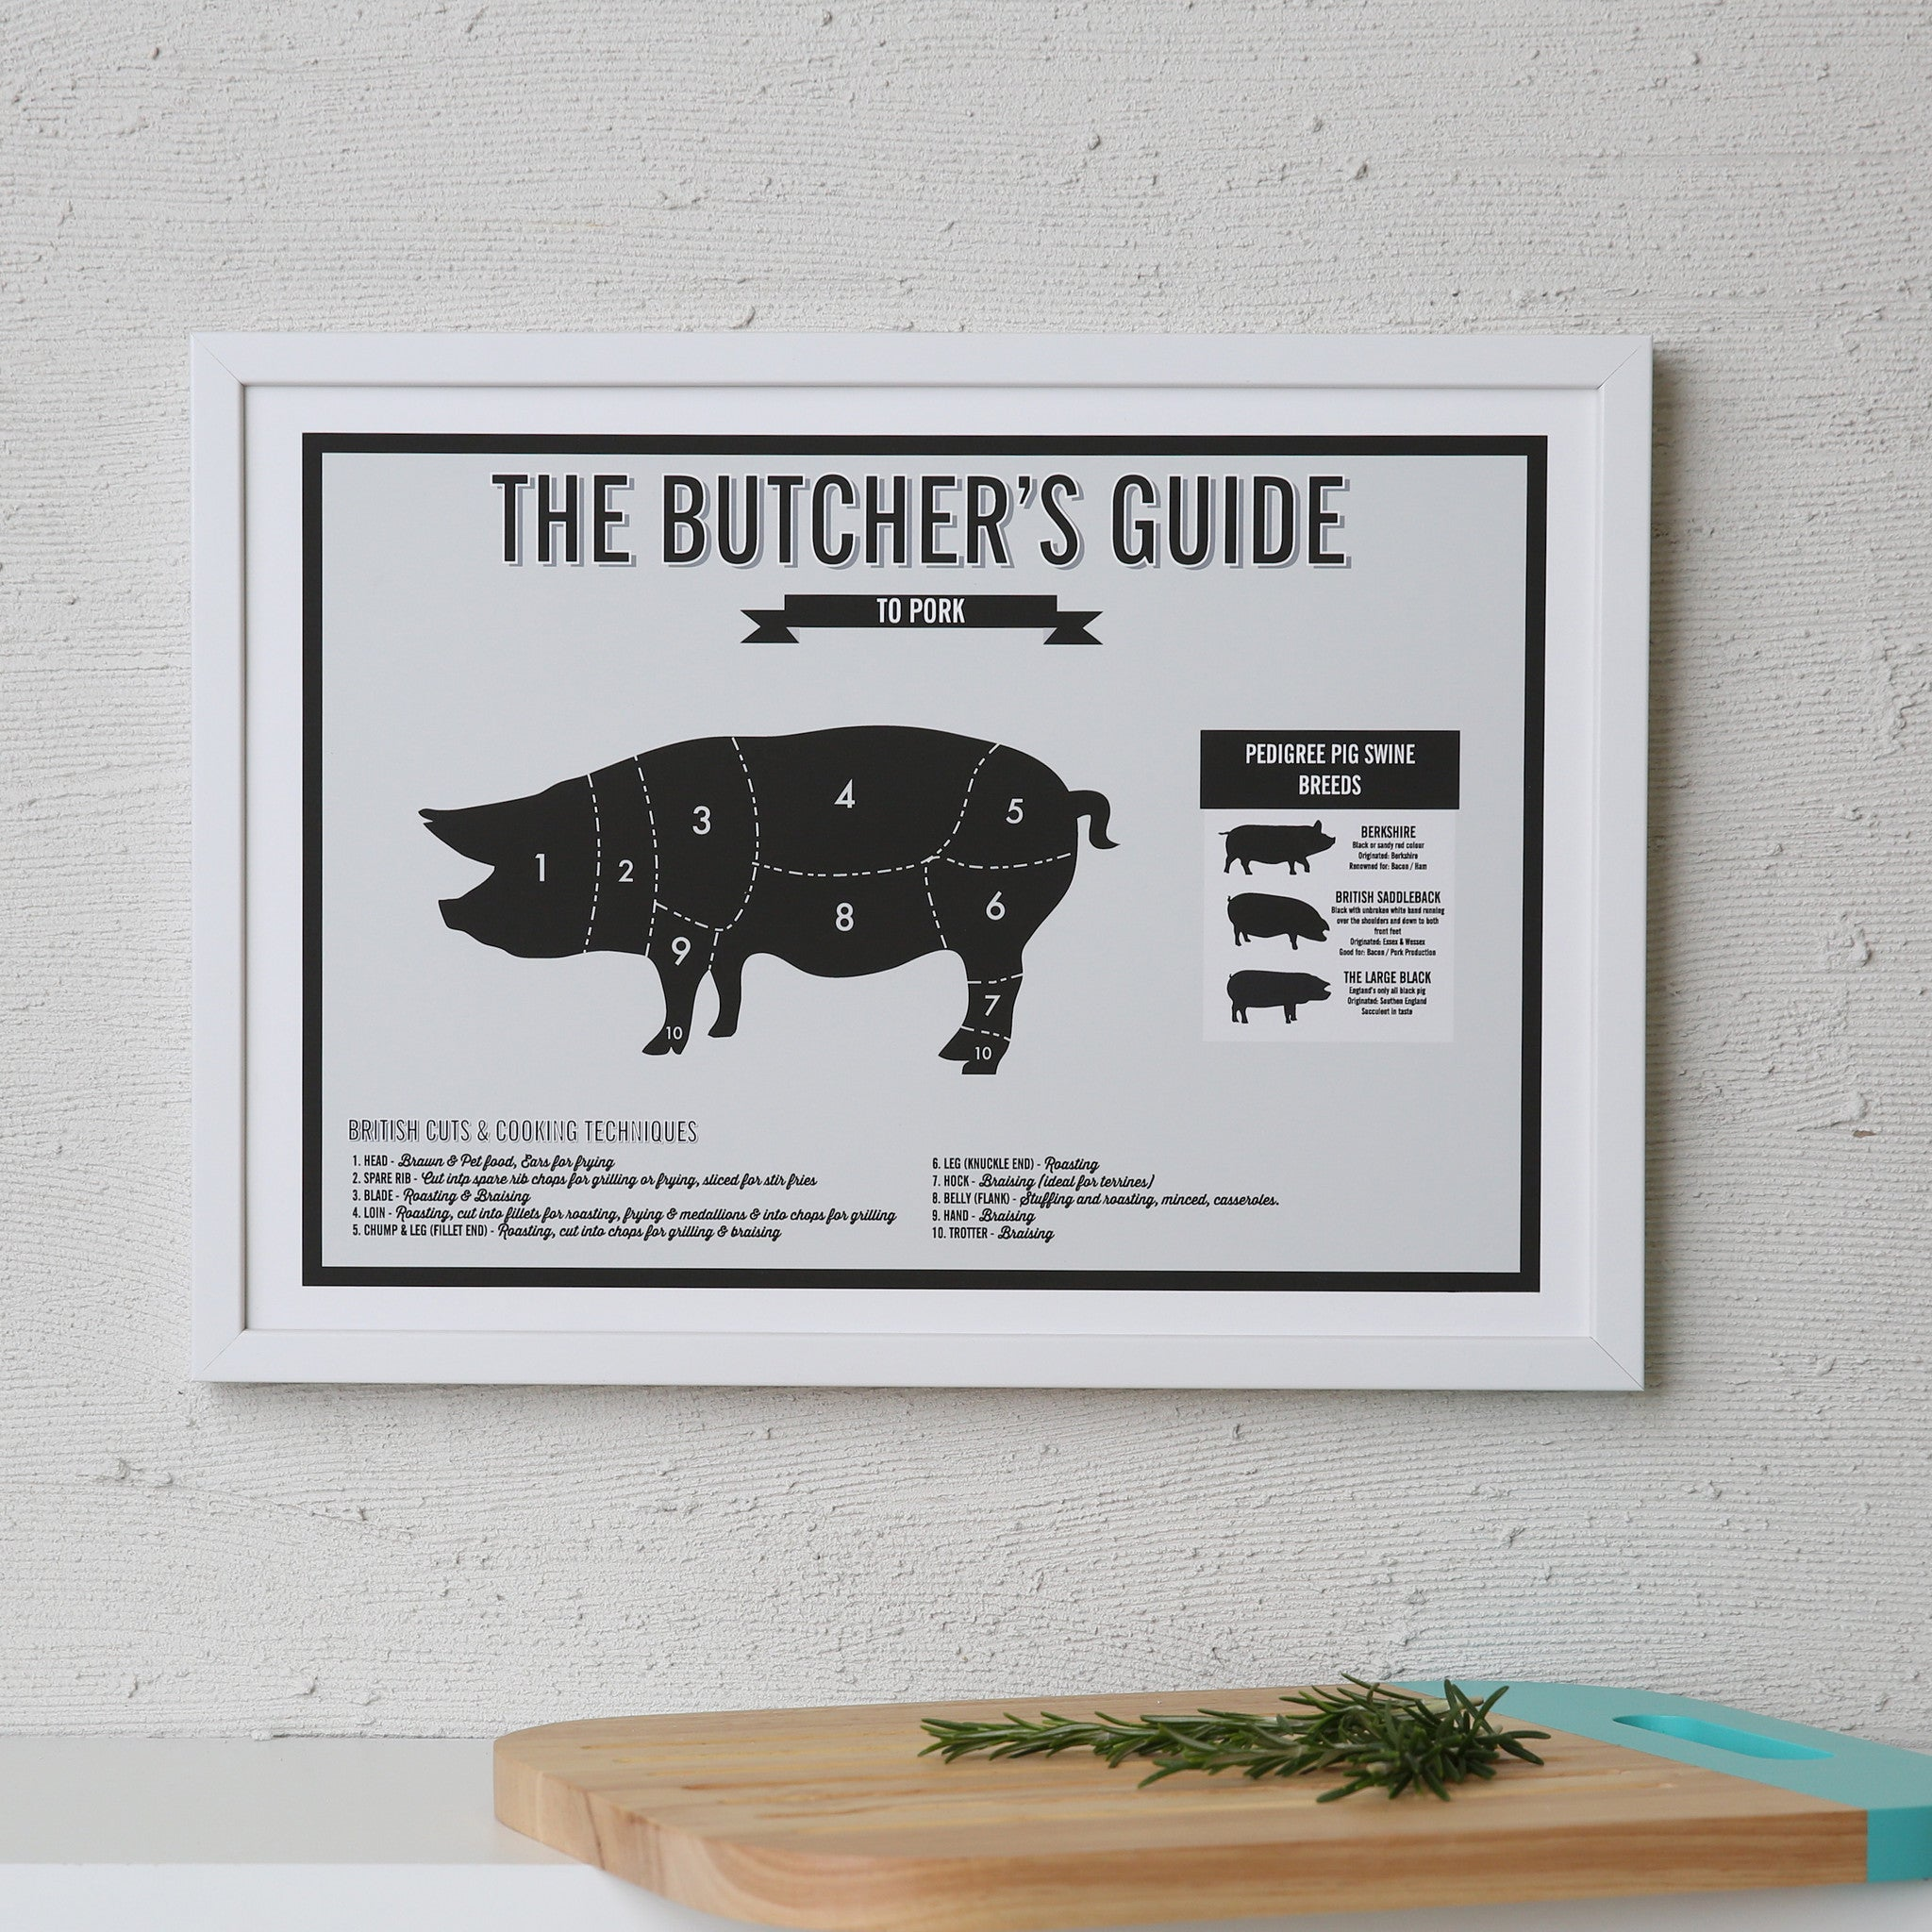 Kitchen Of Butchery : Butcher's Beef Meat Cuts Infographic Kitchen Print - coconutgrass